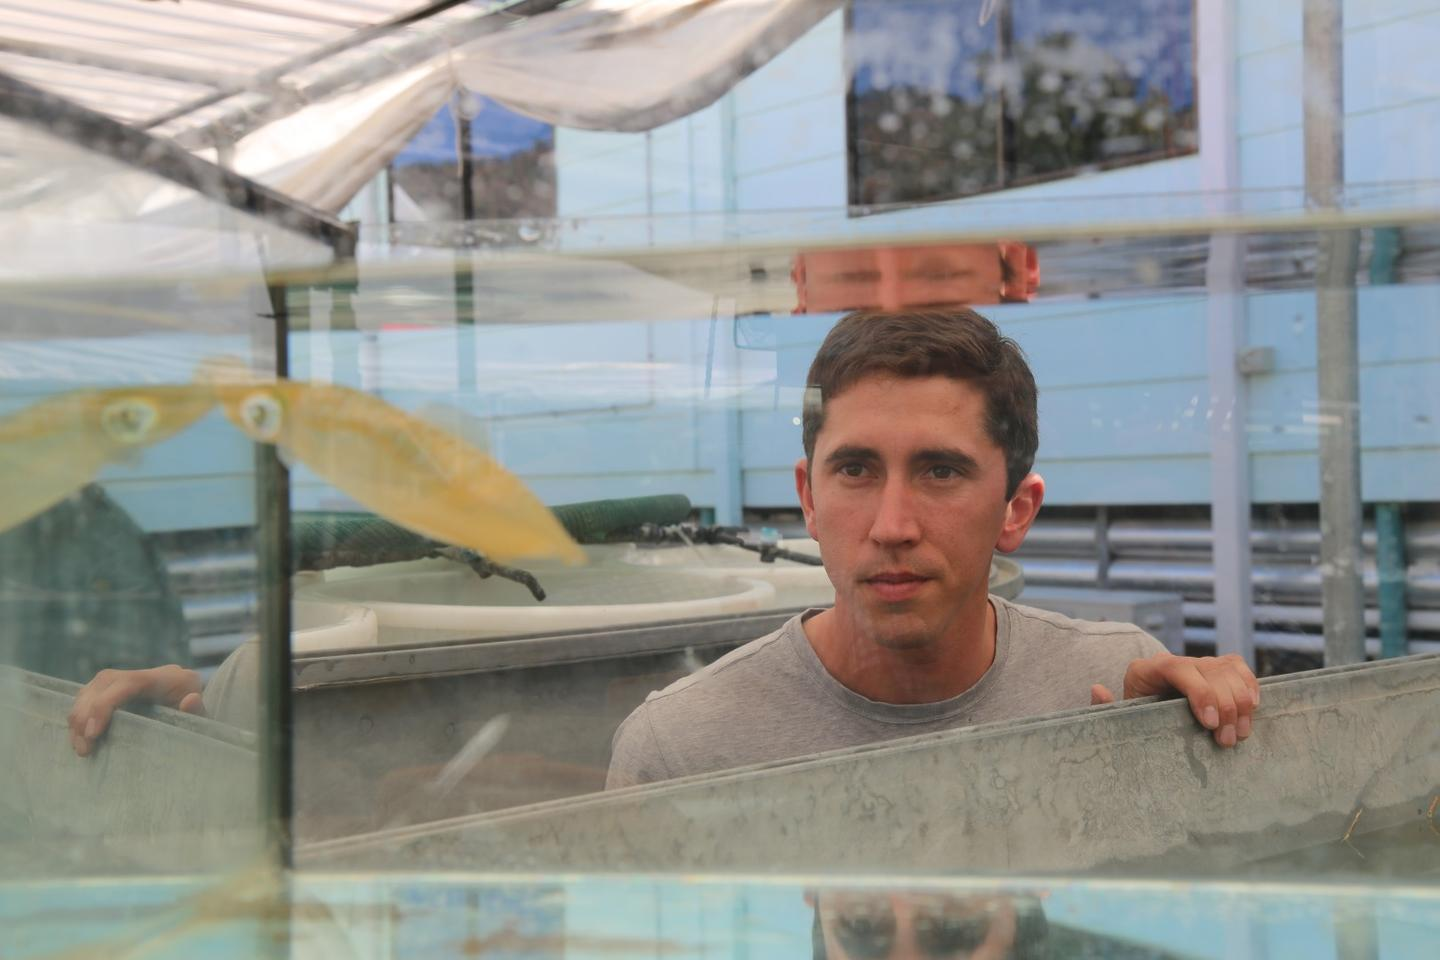 Dr. Blake Spady observes one of the squid, which is doing surprisingly well in acidic water